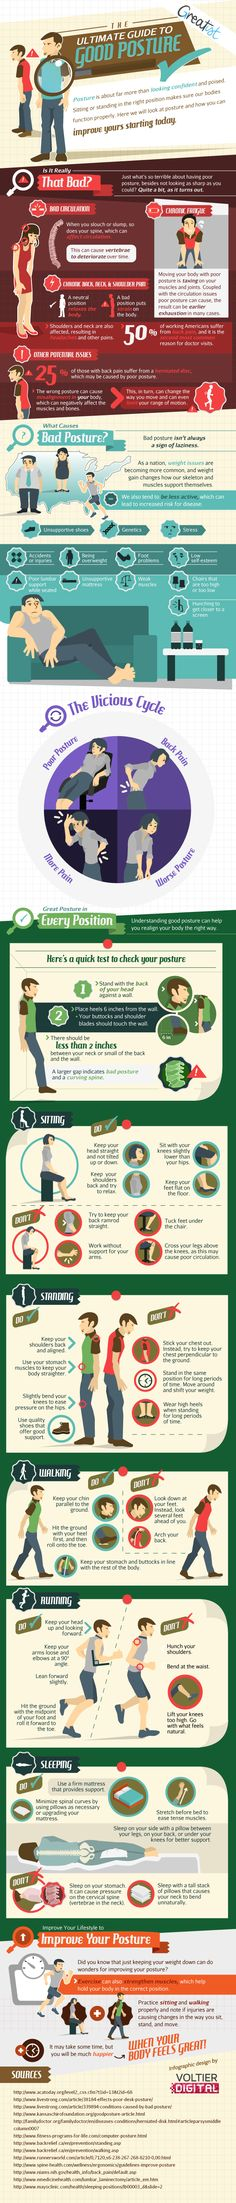 The Ultimate Guide to Good Posture fit, remember this, neck pain, healthi, health tips, postur, back pain, ultim guid, physical therapy